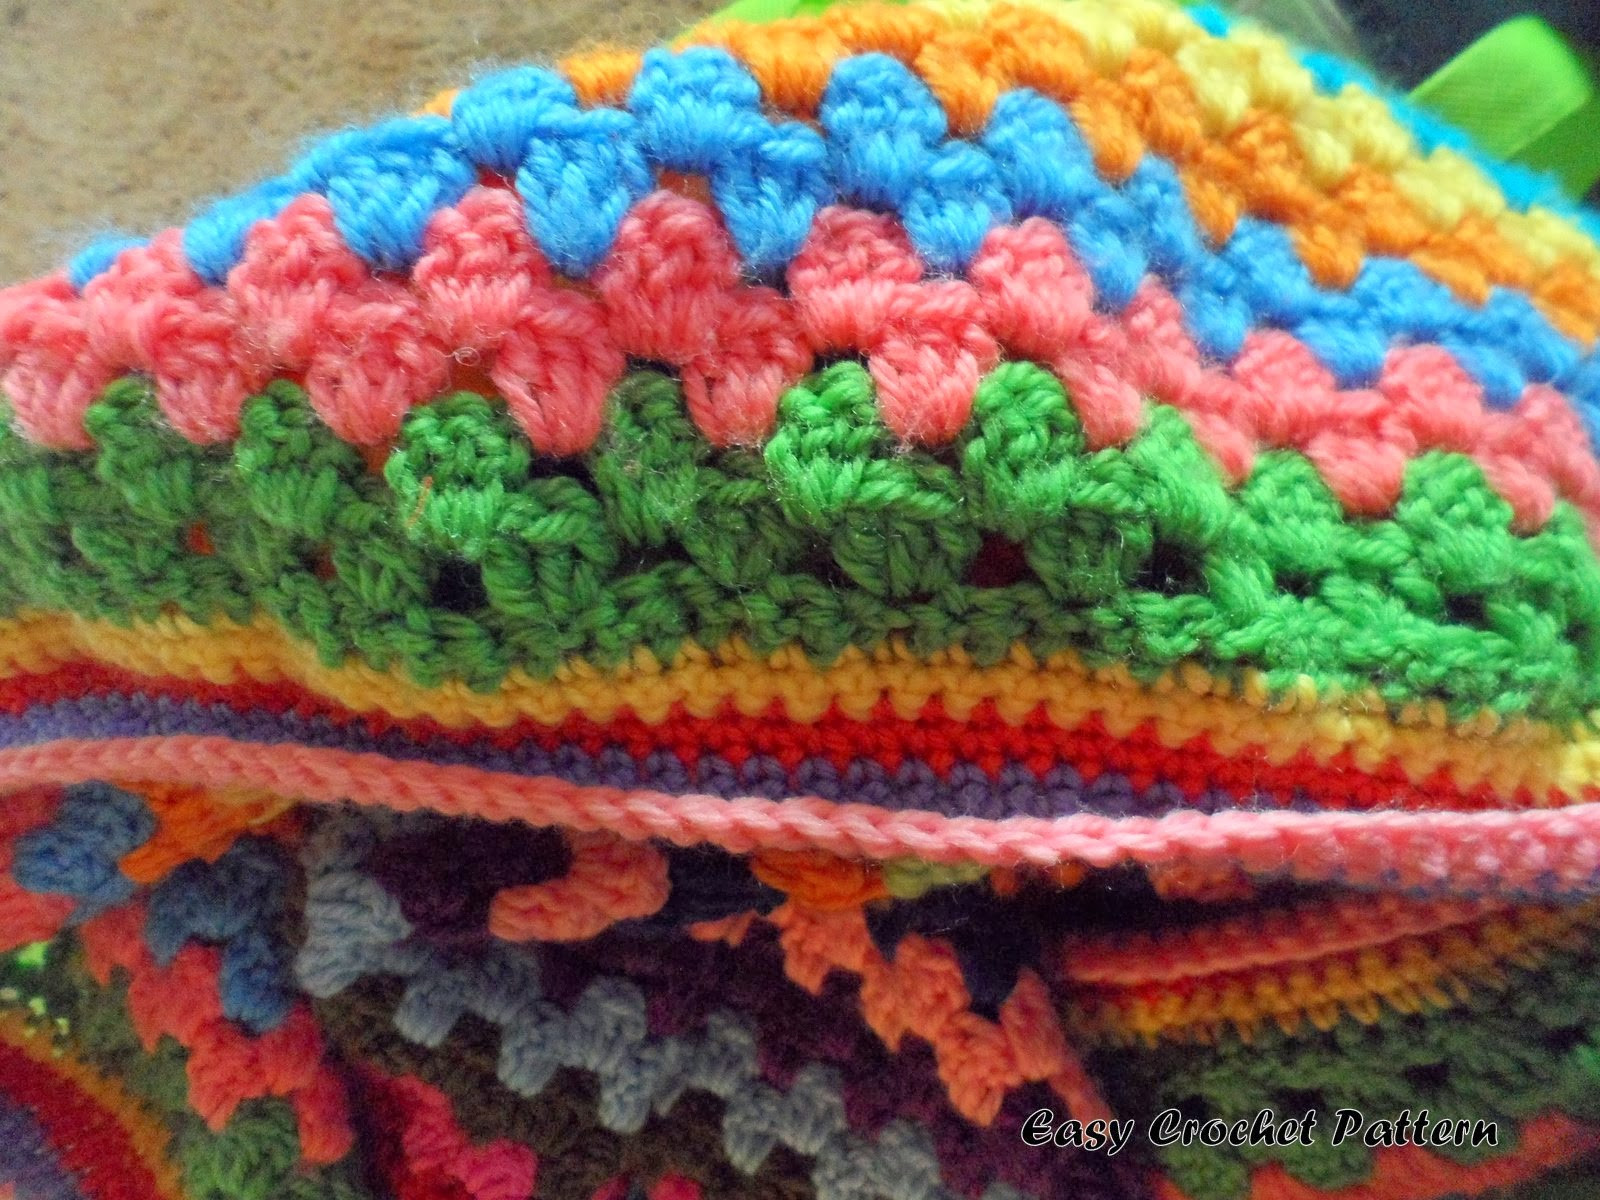 Simple Crochet Afghan Patterns Awesome Easy Crochet Pattern Granny Stripe Afghan Chart Of Innovative 49 Pics Simple Crochet Afghan Patterns